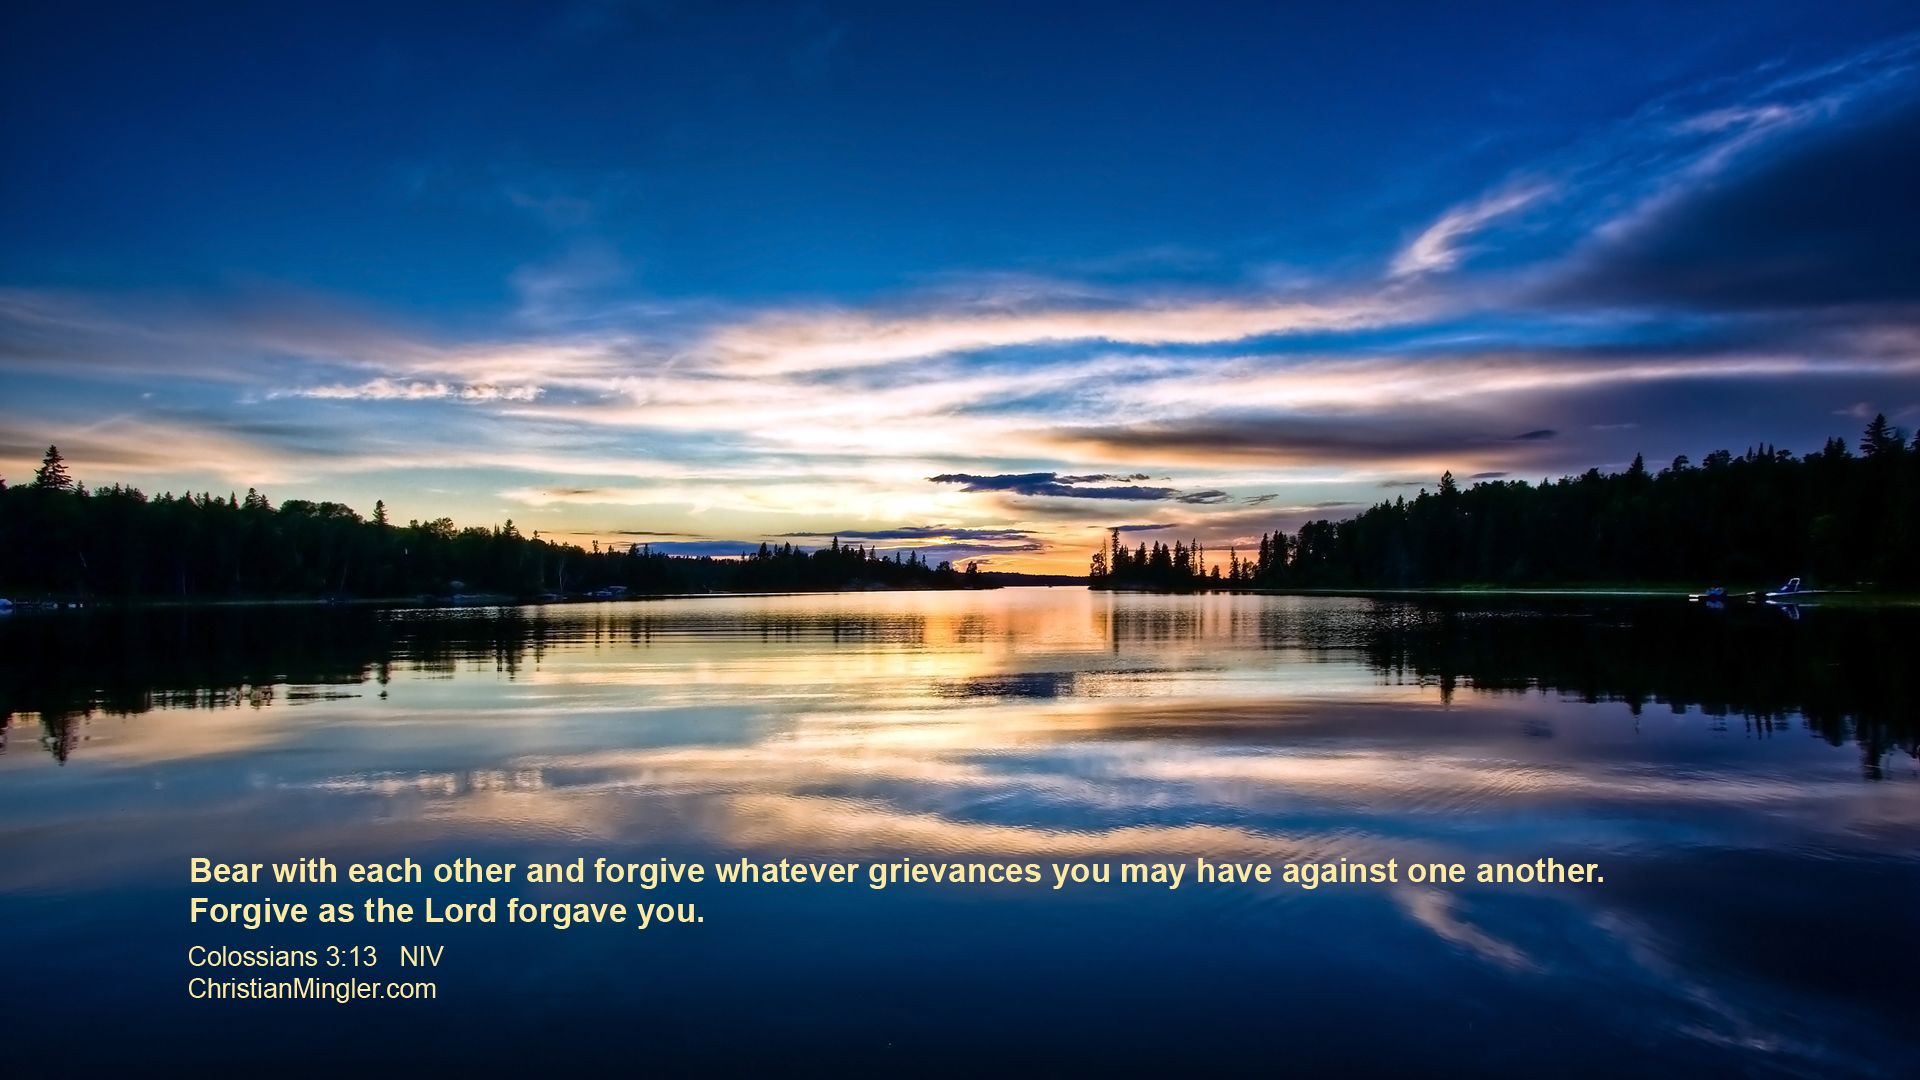 Free-Christian-Free-Christian-sunset-background-Colossians-ChristianMingler-wallpaper-wpc5804987